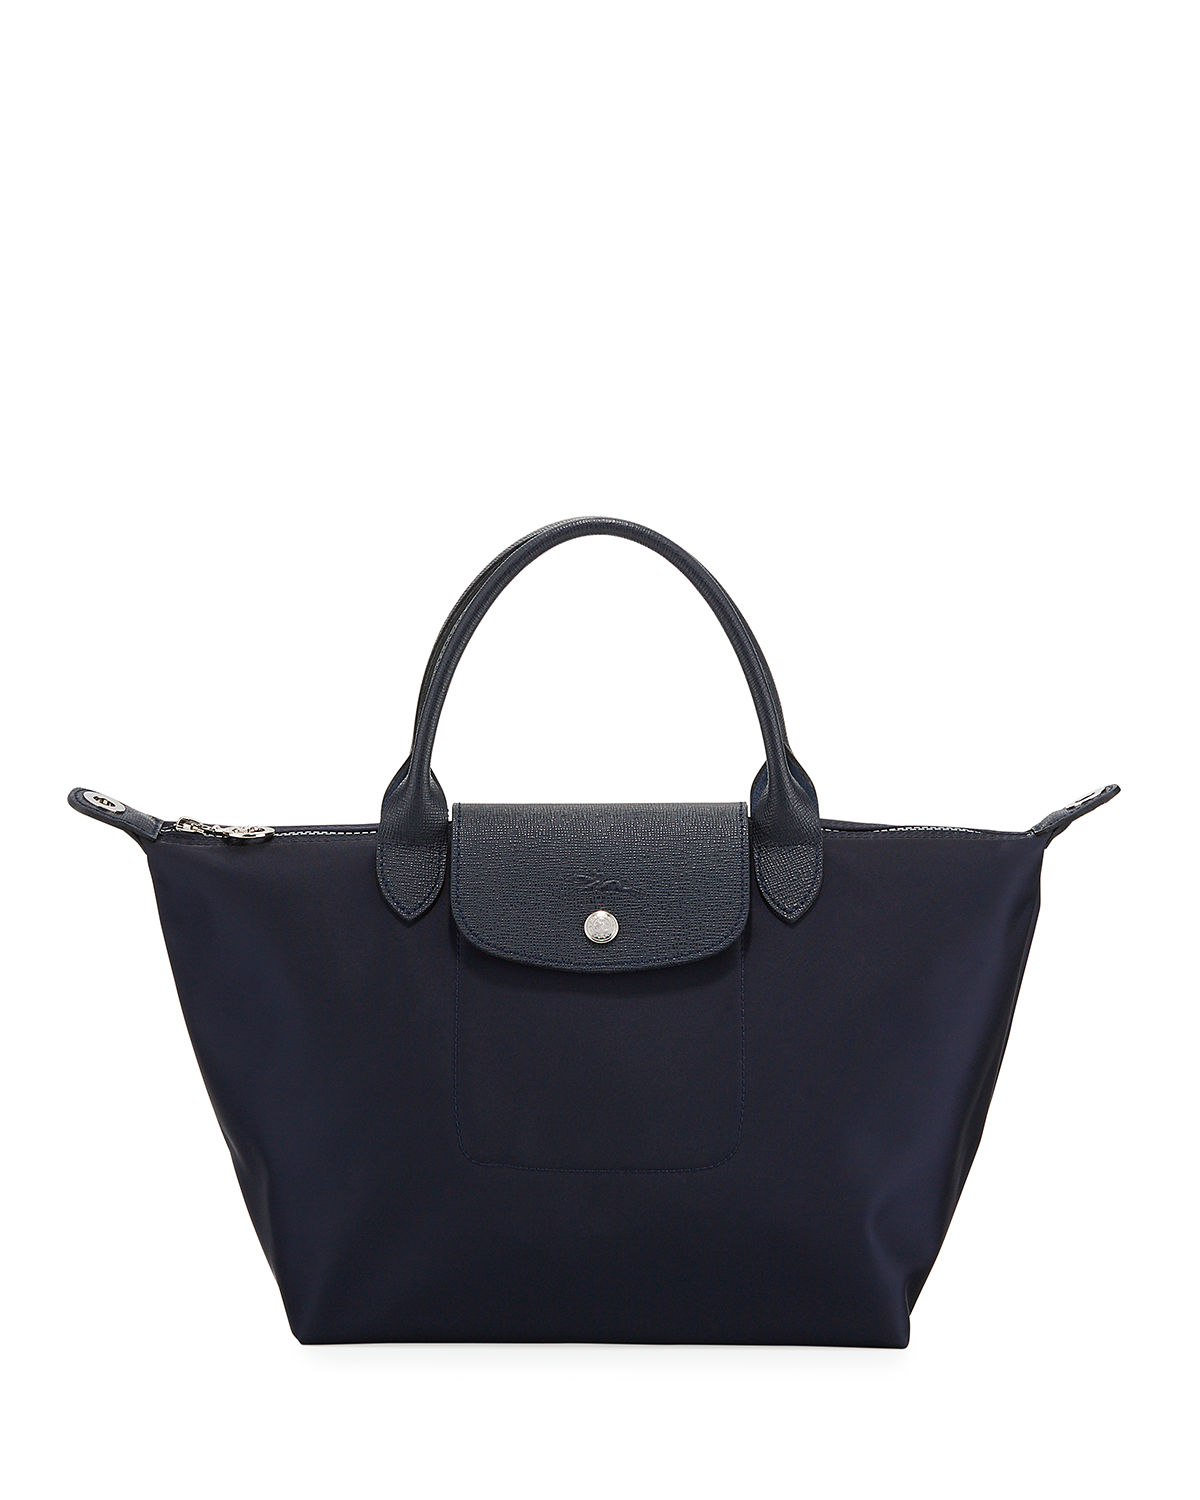 Le Pliage Small Nylon Tote Bag